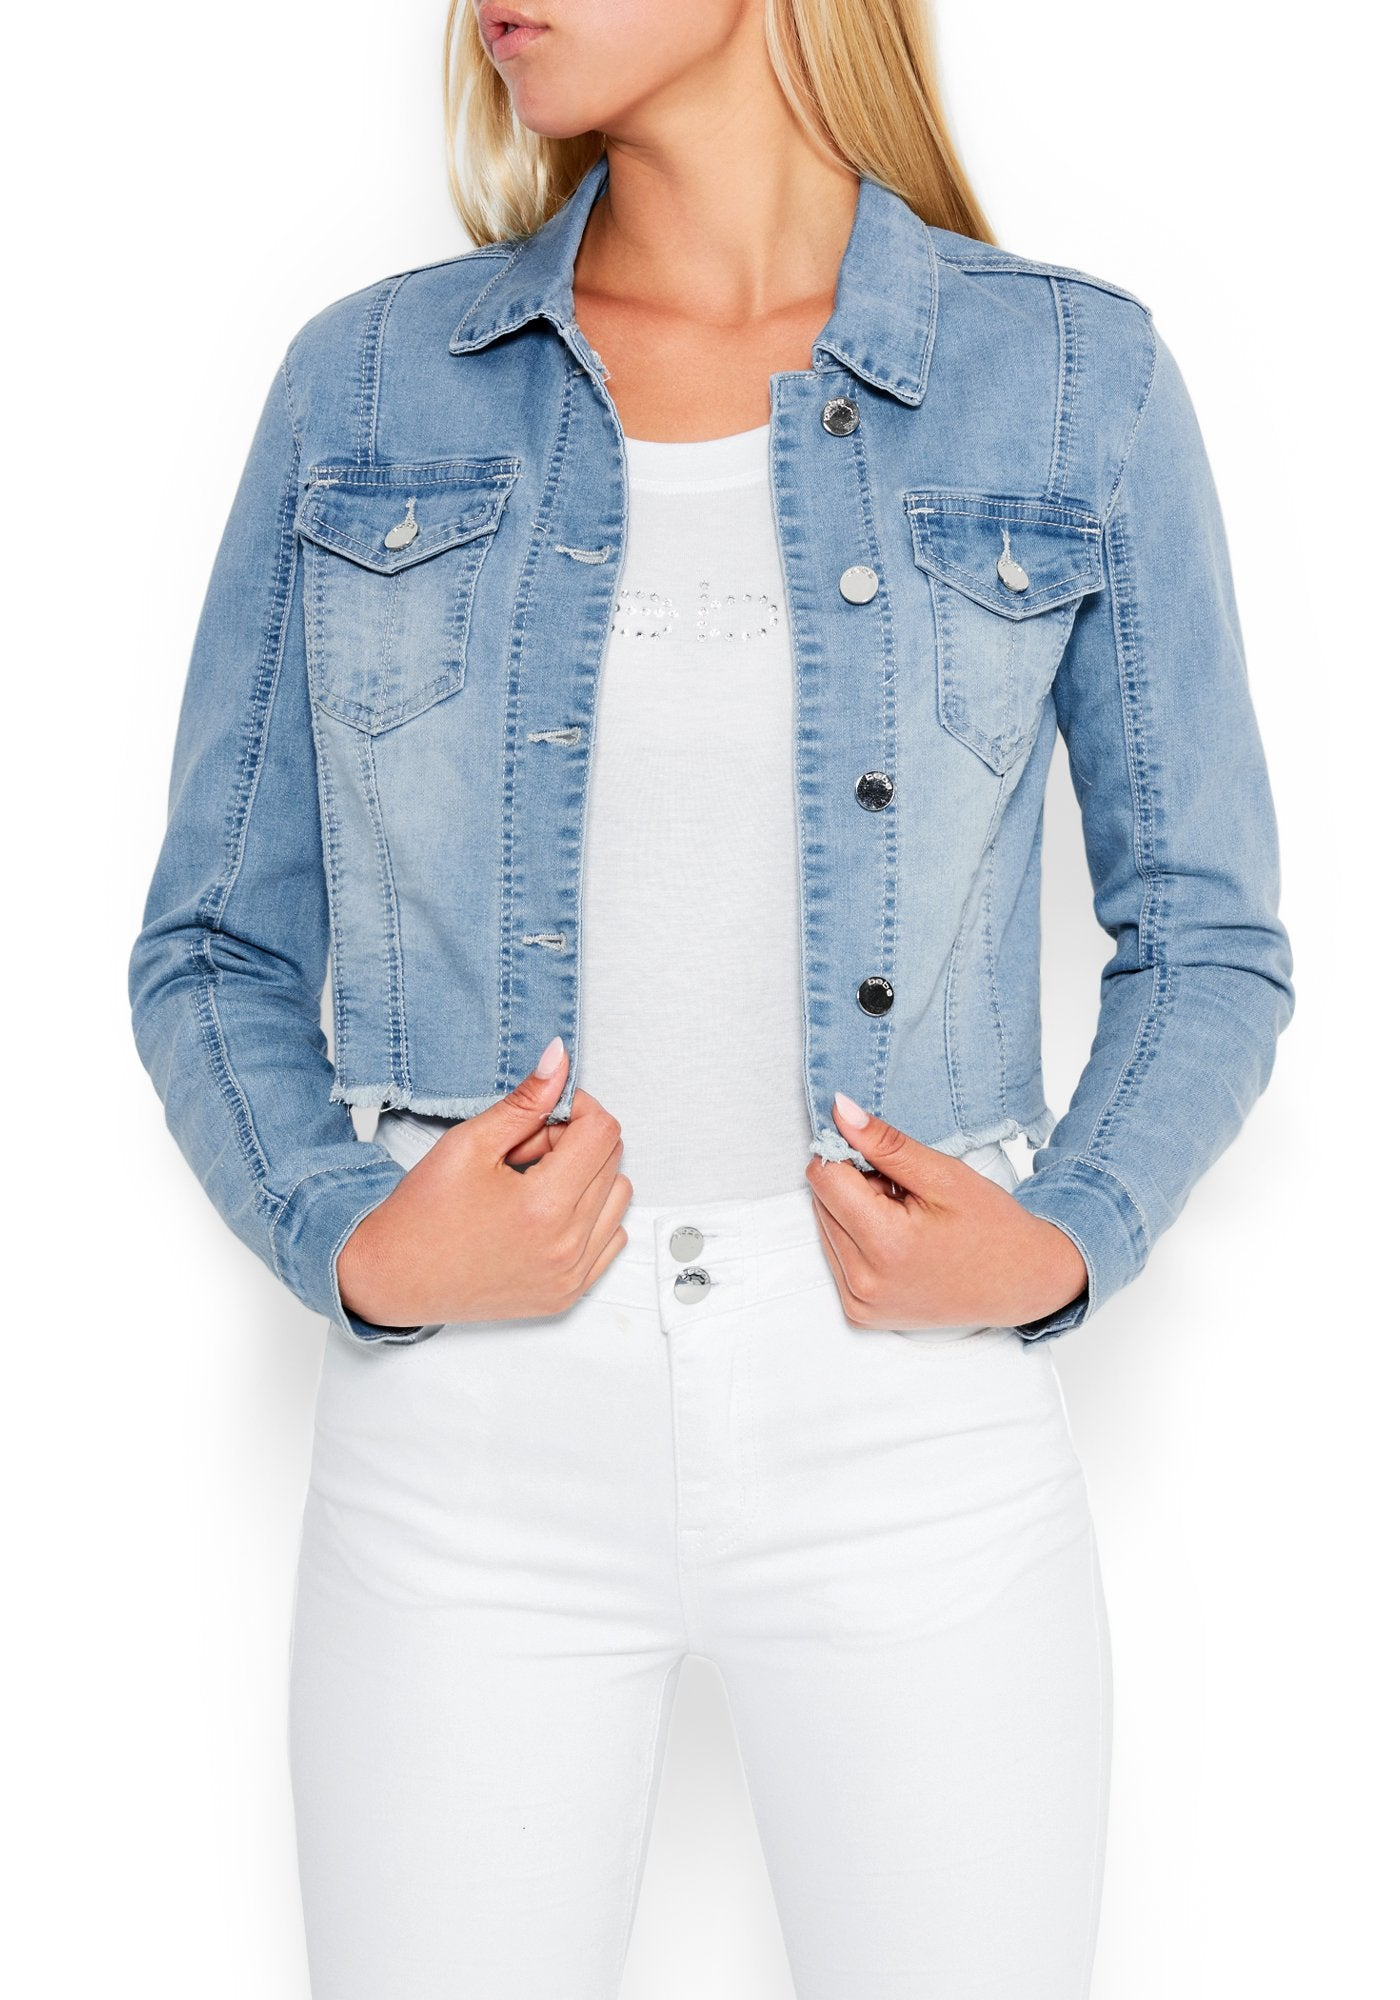 Image of Women's Bebe Logo Raw Hem Denim Jacket, Size Medium in LIGHT WASH Cotton/Spandex